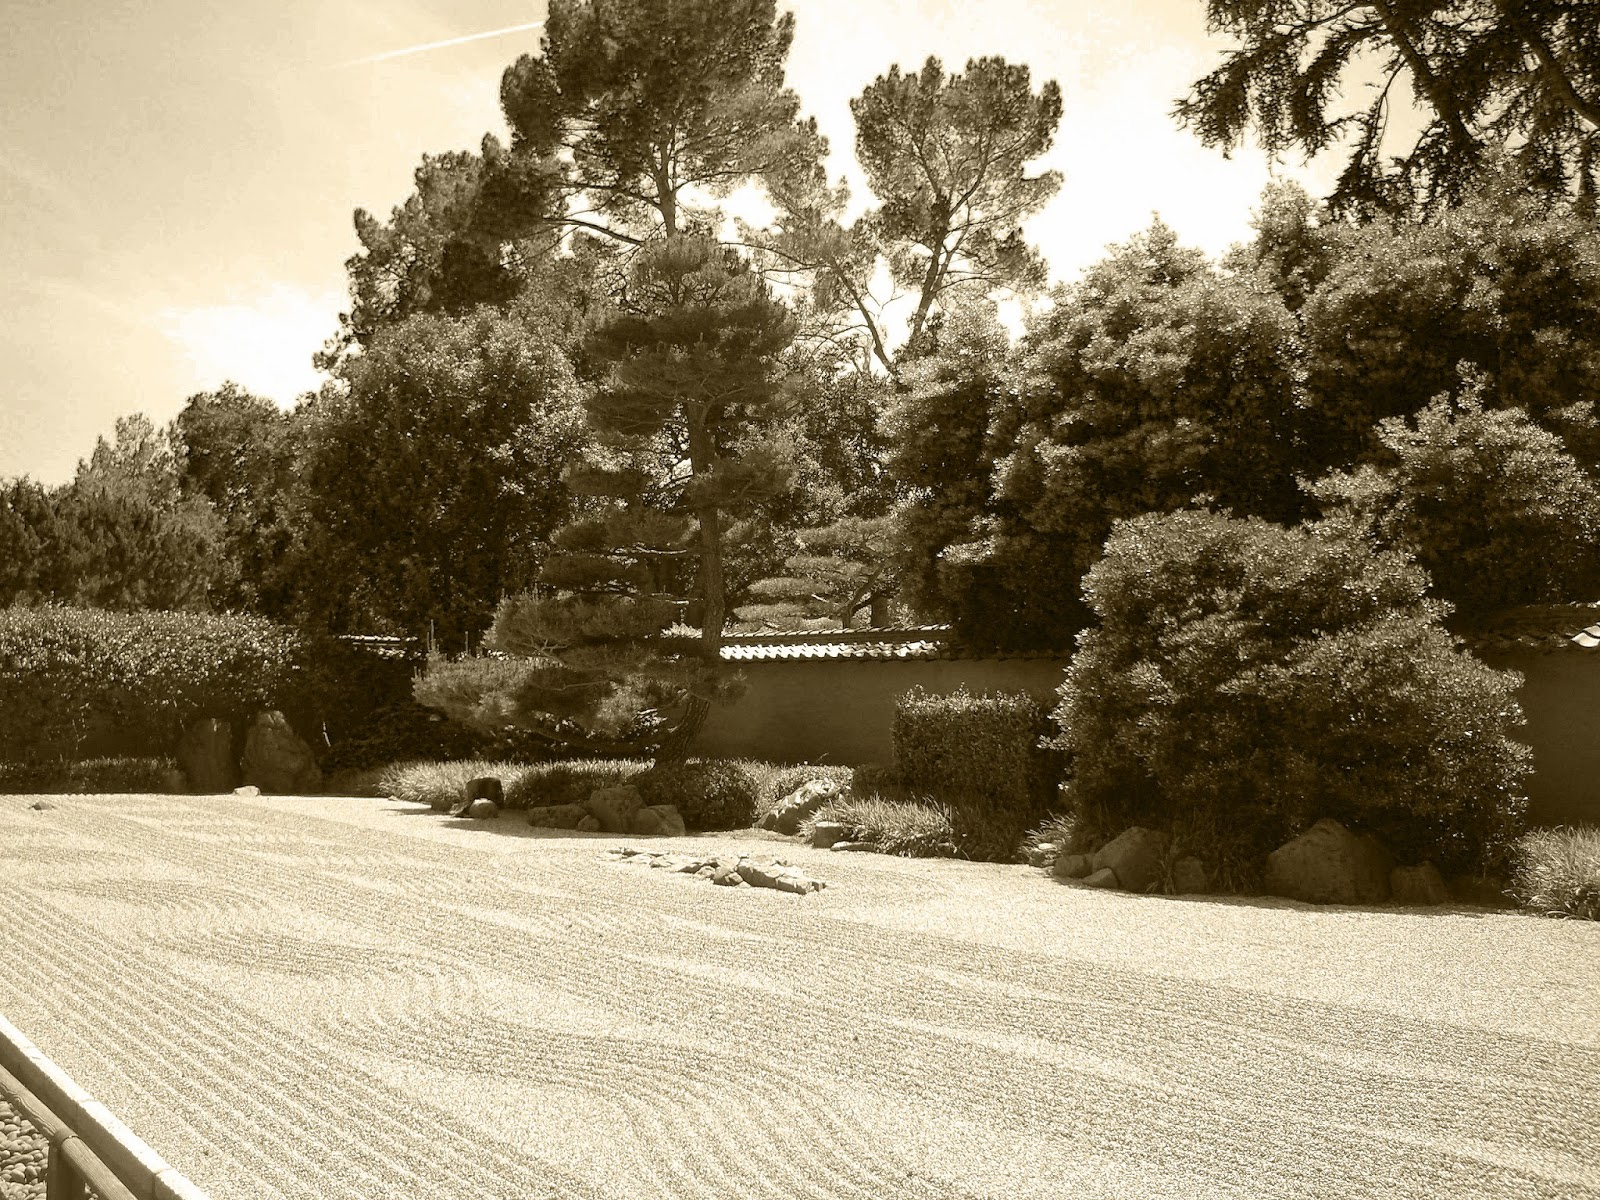 THOUGHTS ON ARCHITECTURE AND URBANISM: From ¨The Zen Garden¨